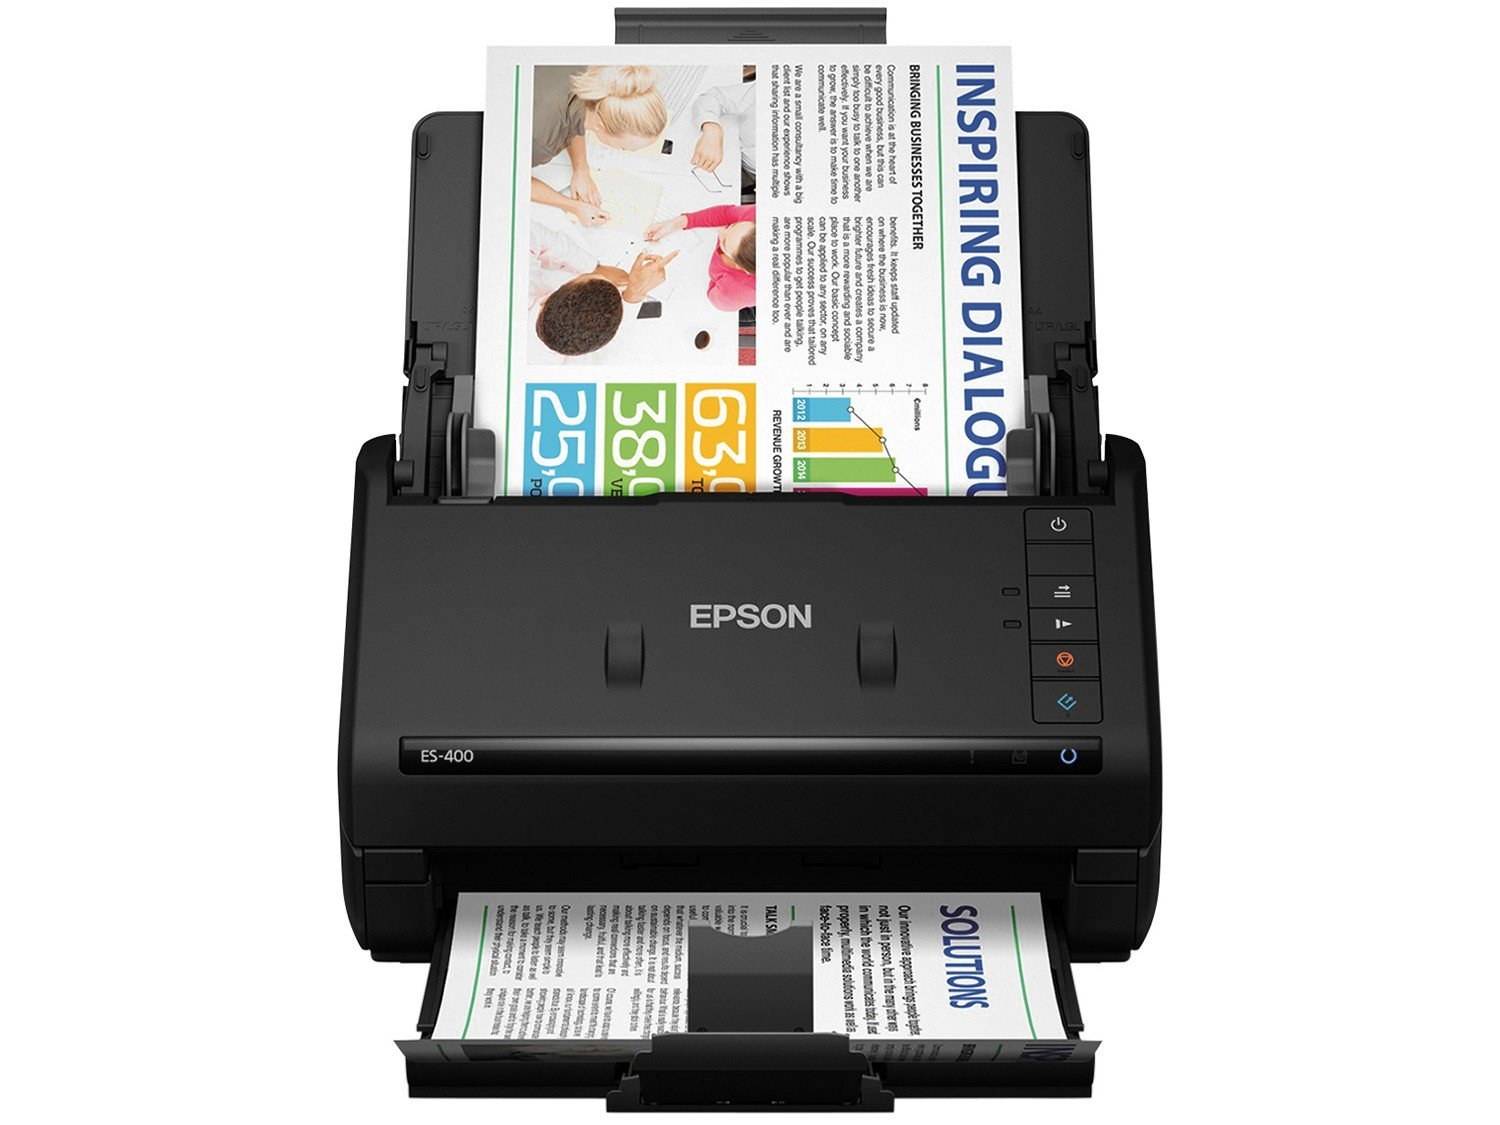 Foto 3 - Scanner de Mesa Epson WorkForce ES400 - 1200dpi